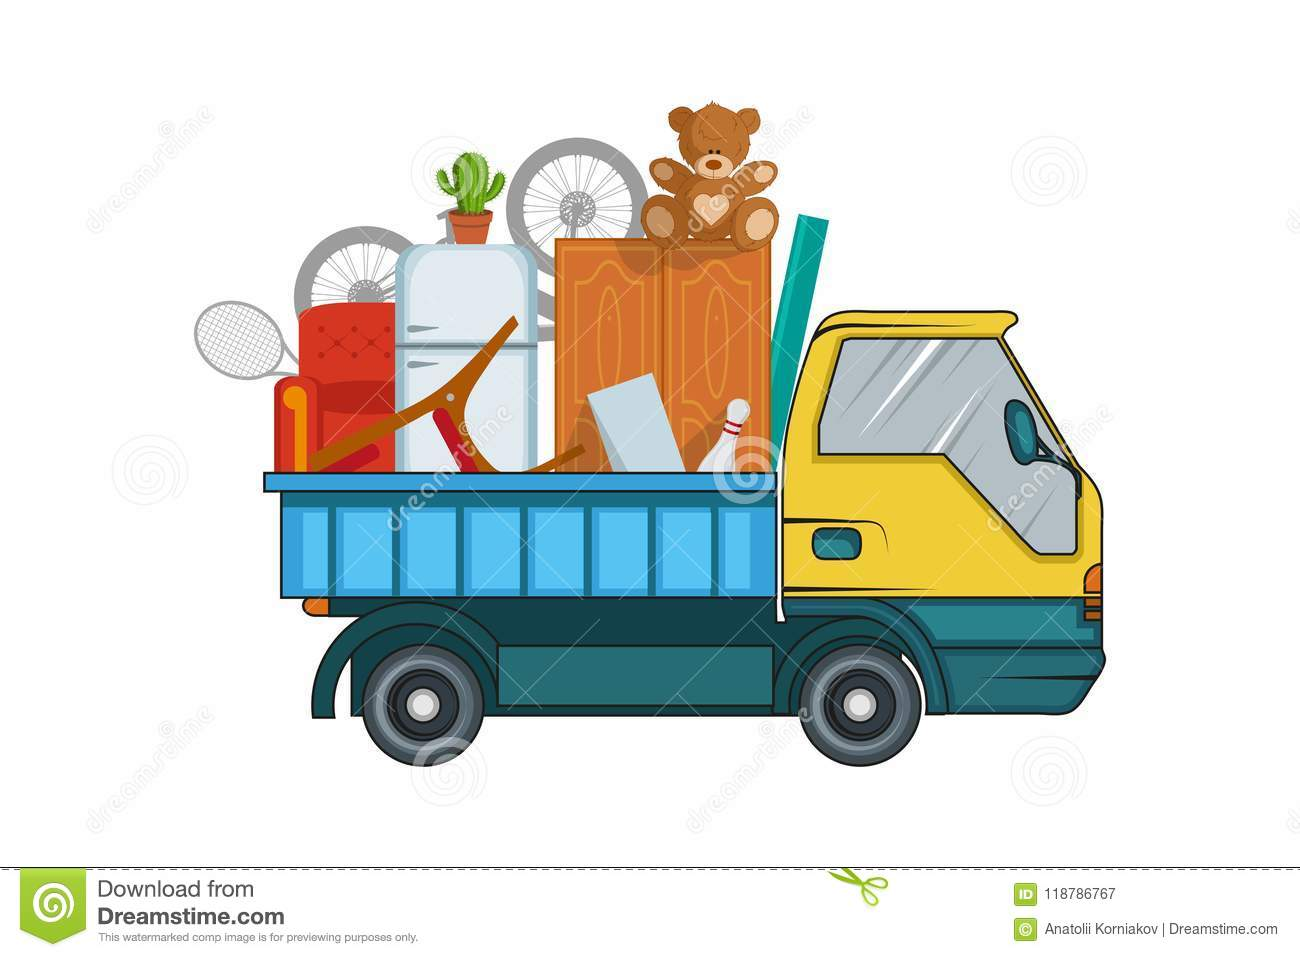 Relocation service. Moving concept. Cargo Truck is transporting. Delivery freight truck illustration. Transport company